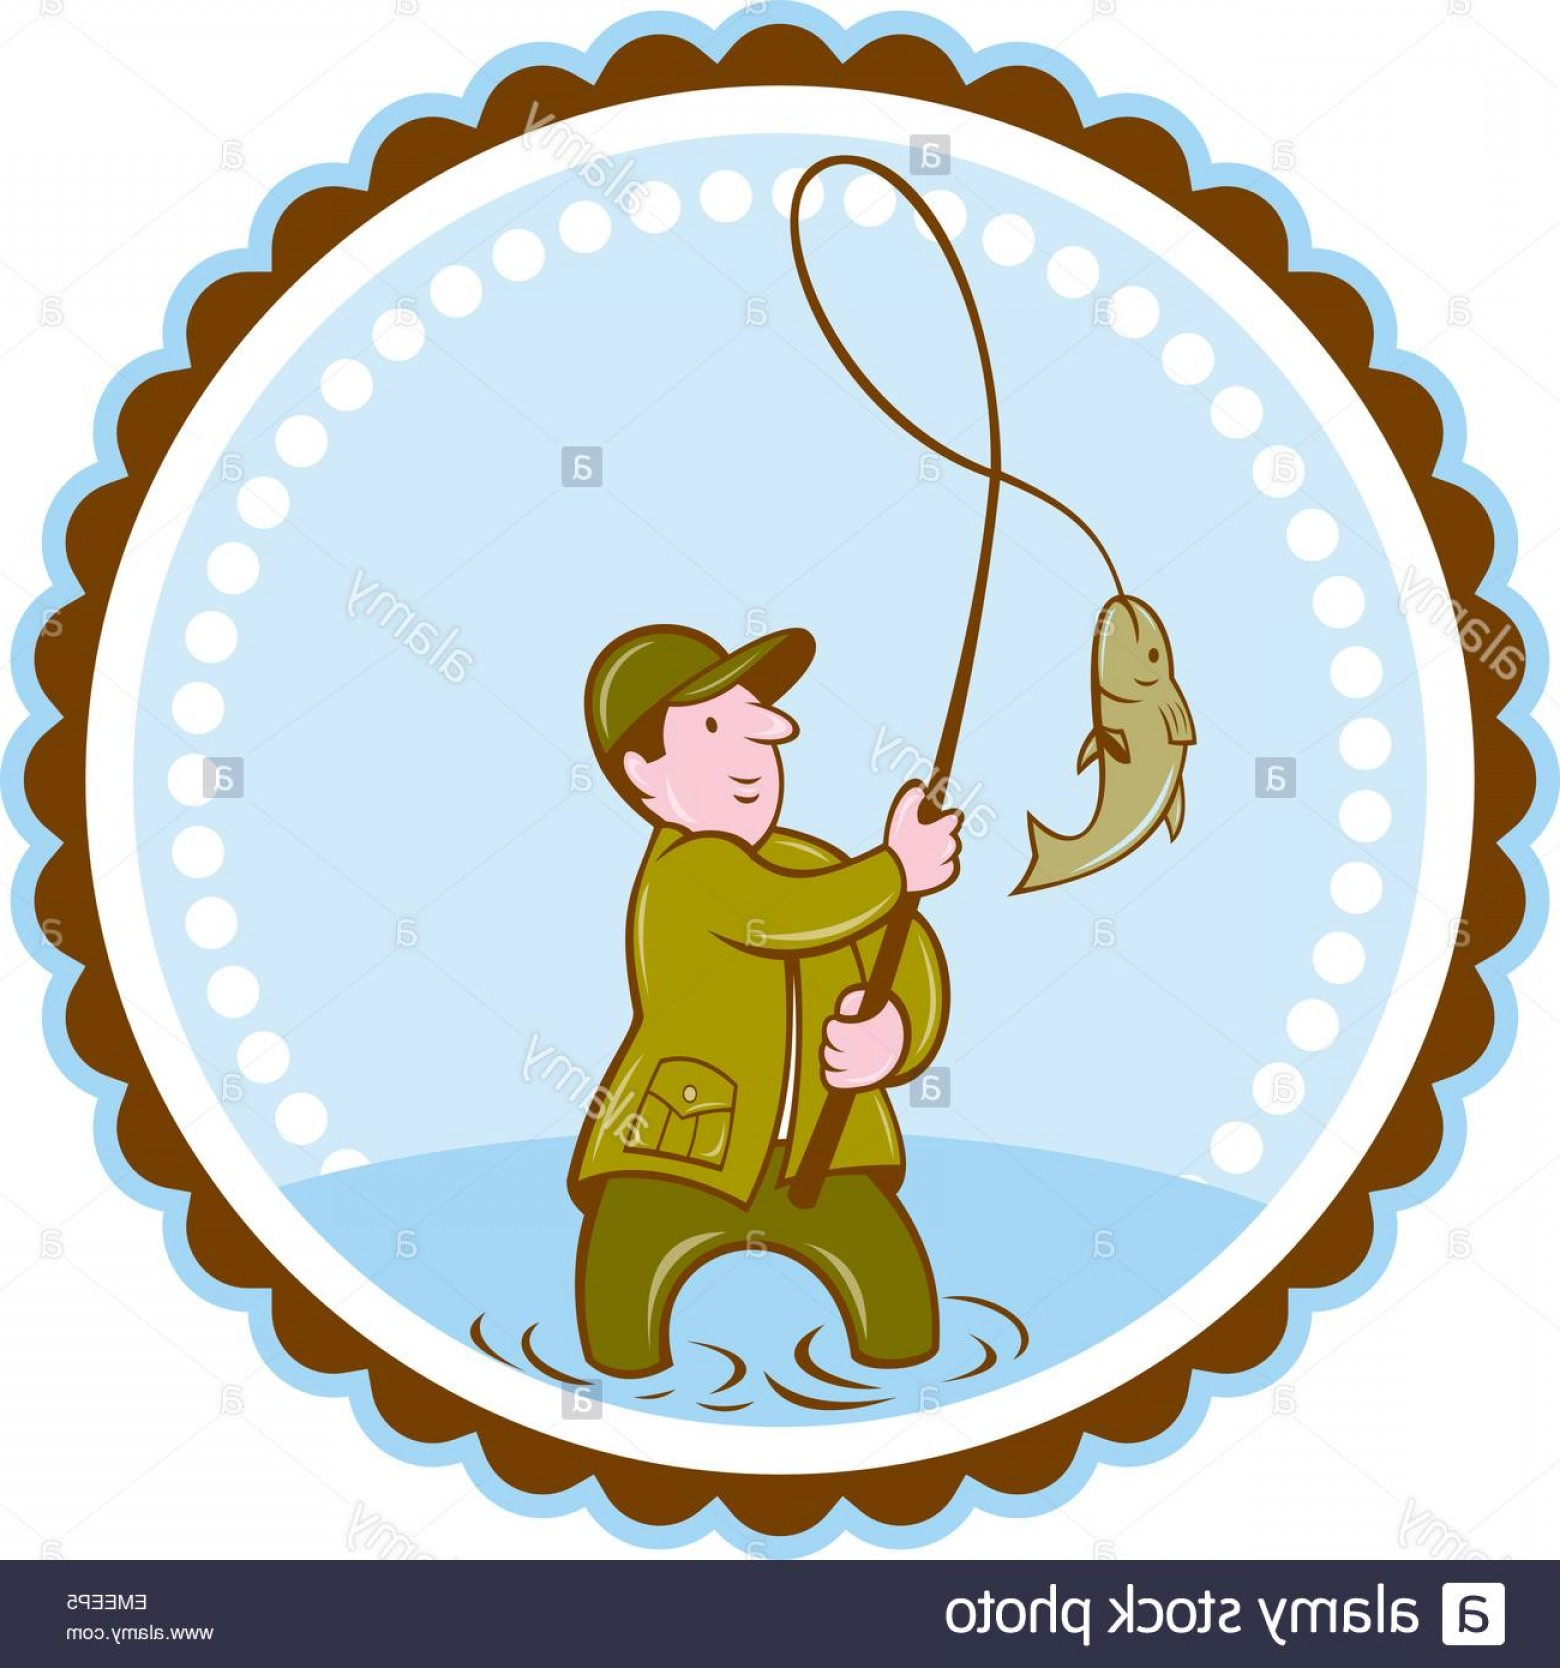 Detailed Vector Art Fly Fisherman: Stock Photo Fly Fisherman Fish On Reel Rosette Cartoon